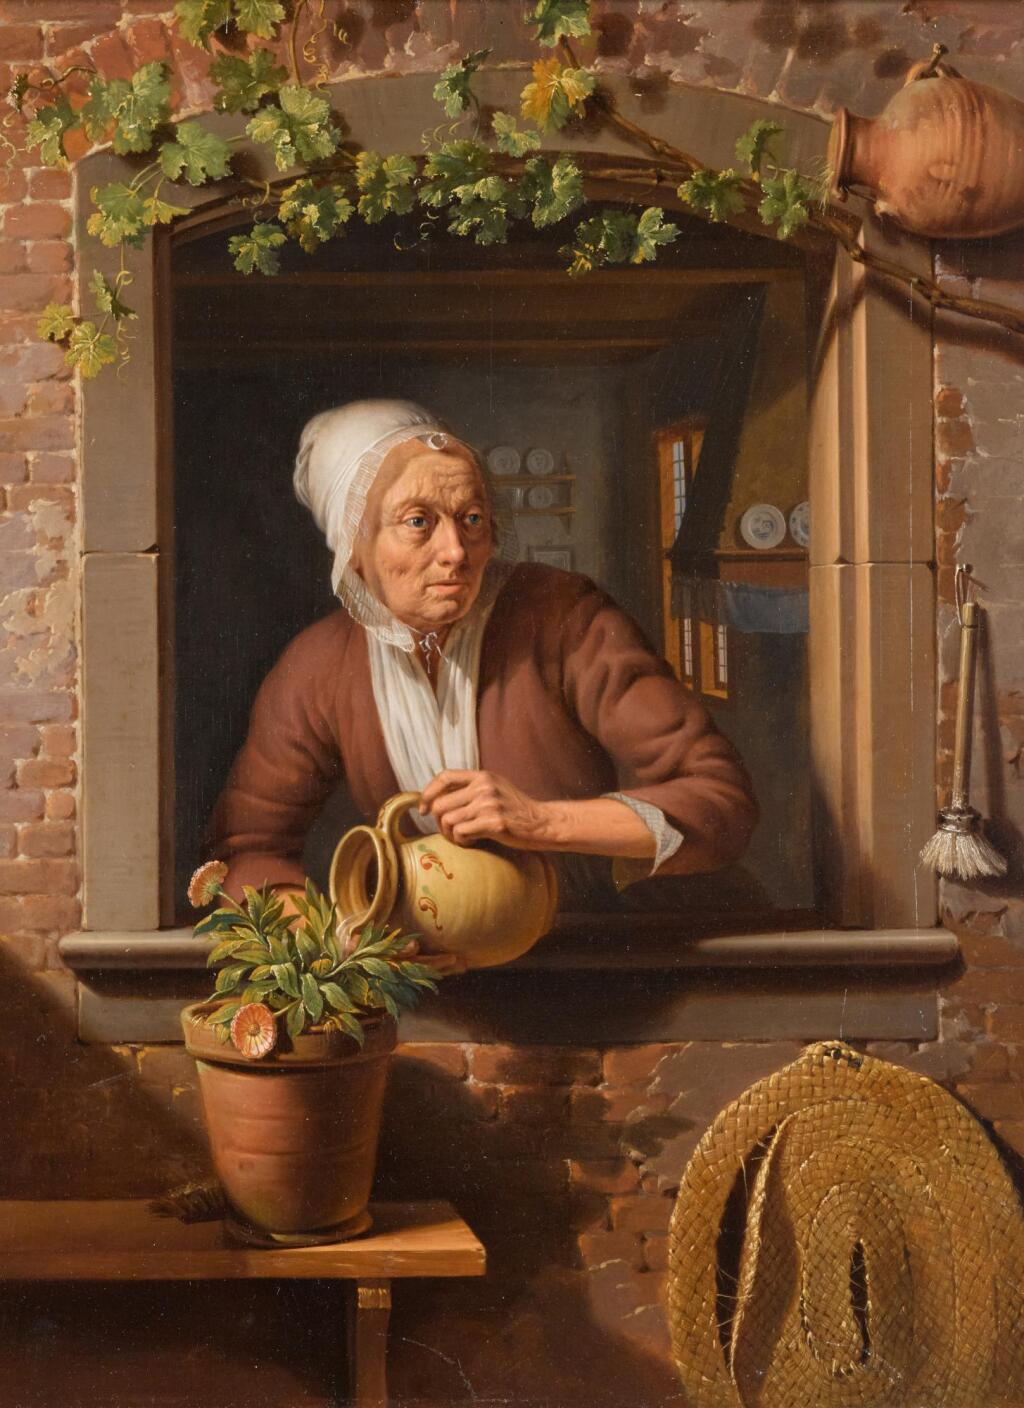 SIMON BESANGER | A peasant lady watering a flower pot on a wooden table with a view of the interior of her home in the background